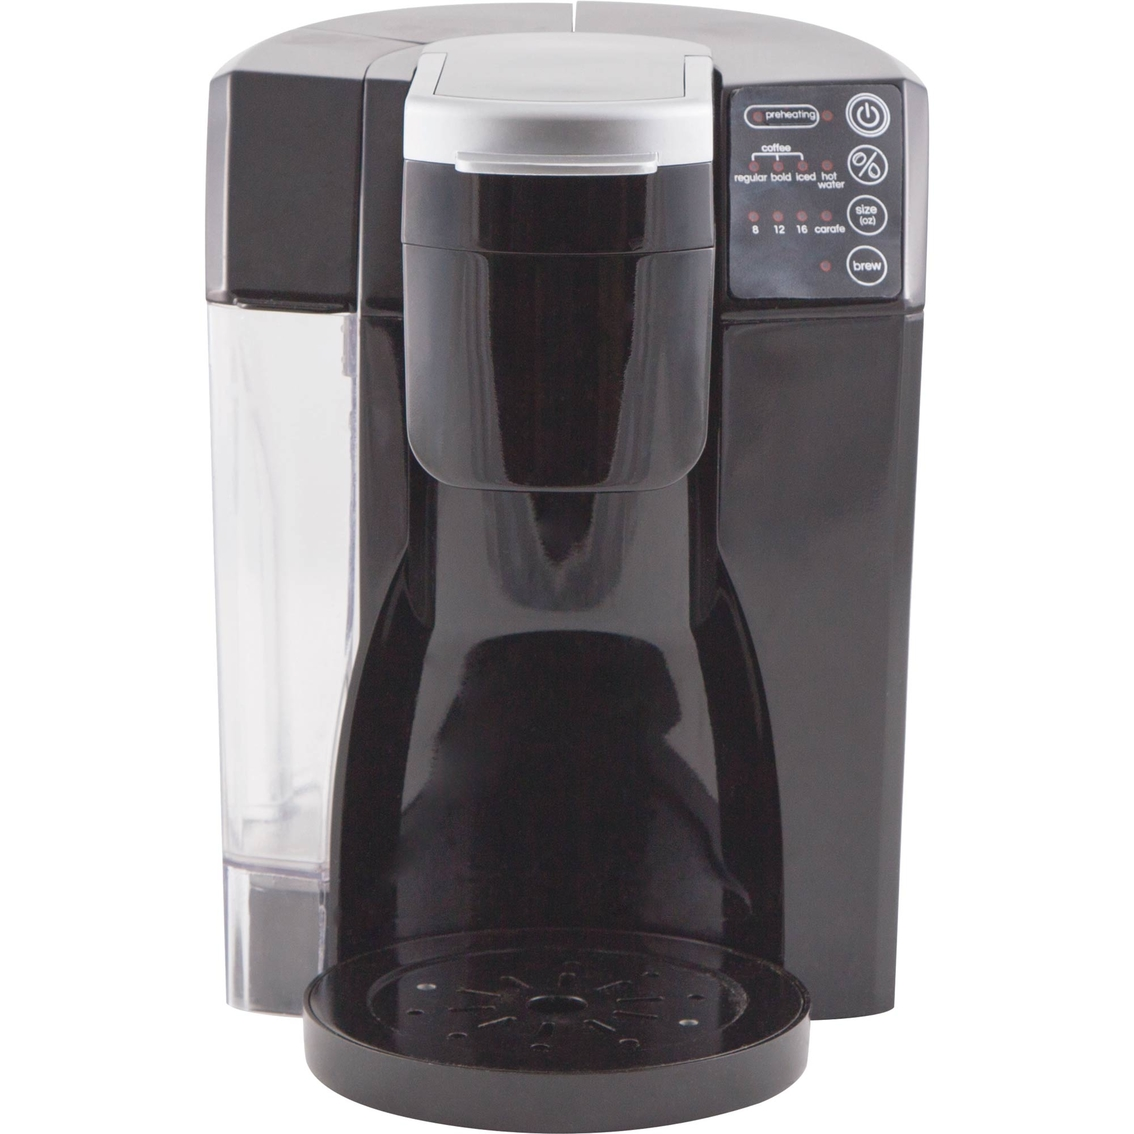 6887b850002b Nuwave Bruhub 3 In 1 Single Serve Coffee Maker